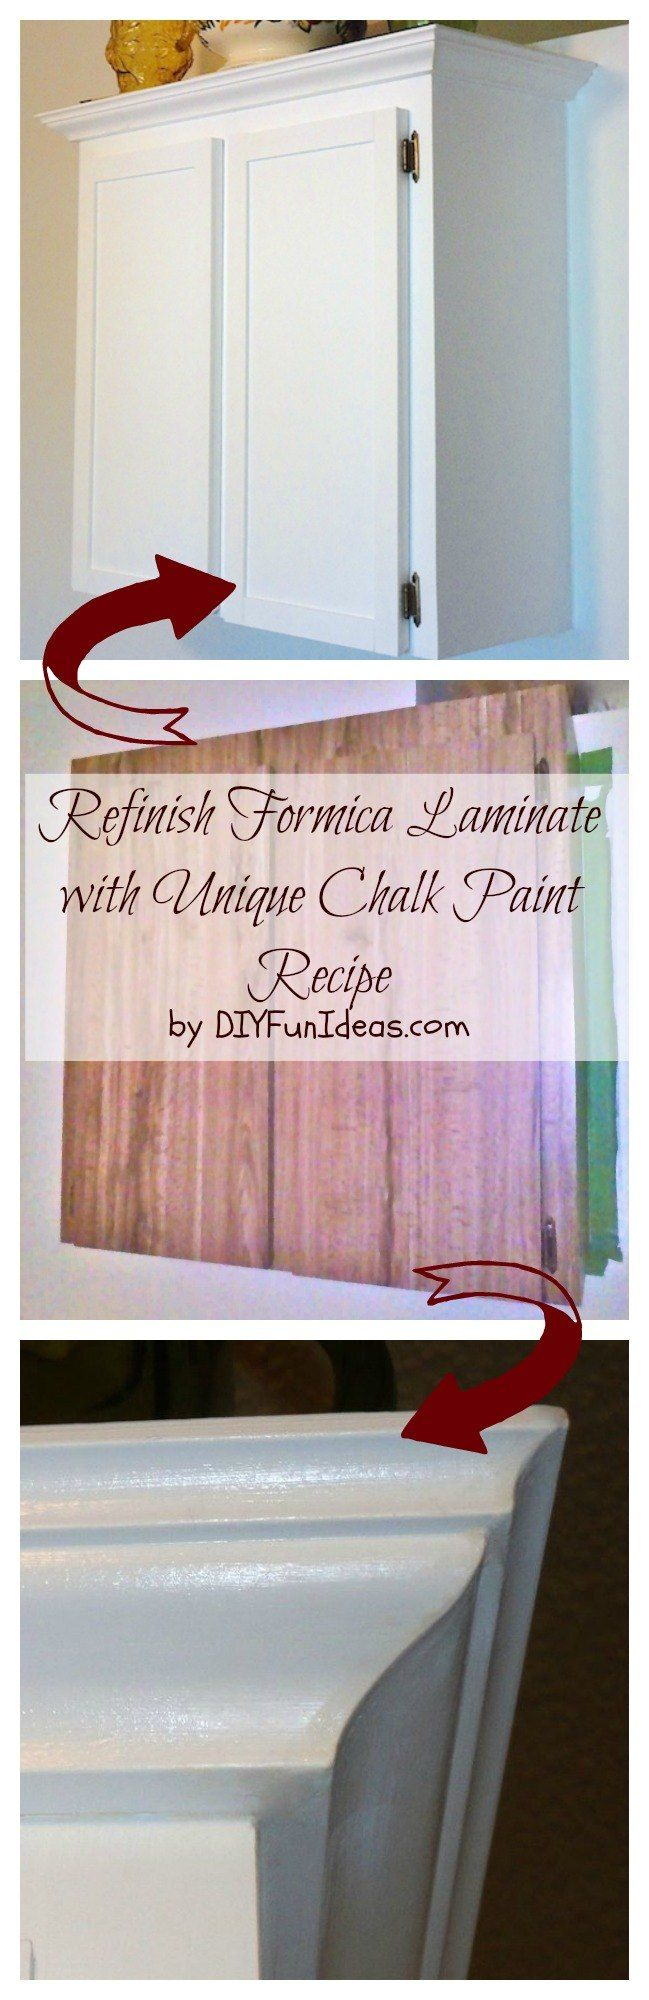 25 best ideas about redo laminate cabinets on pinterest for Can formica kitchen cabinets be painted